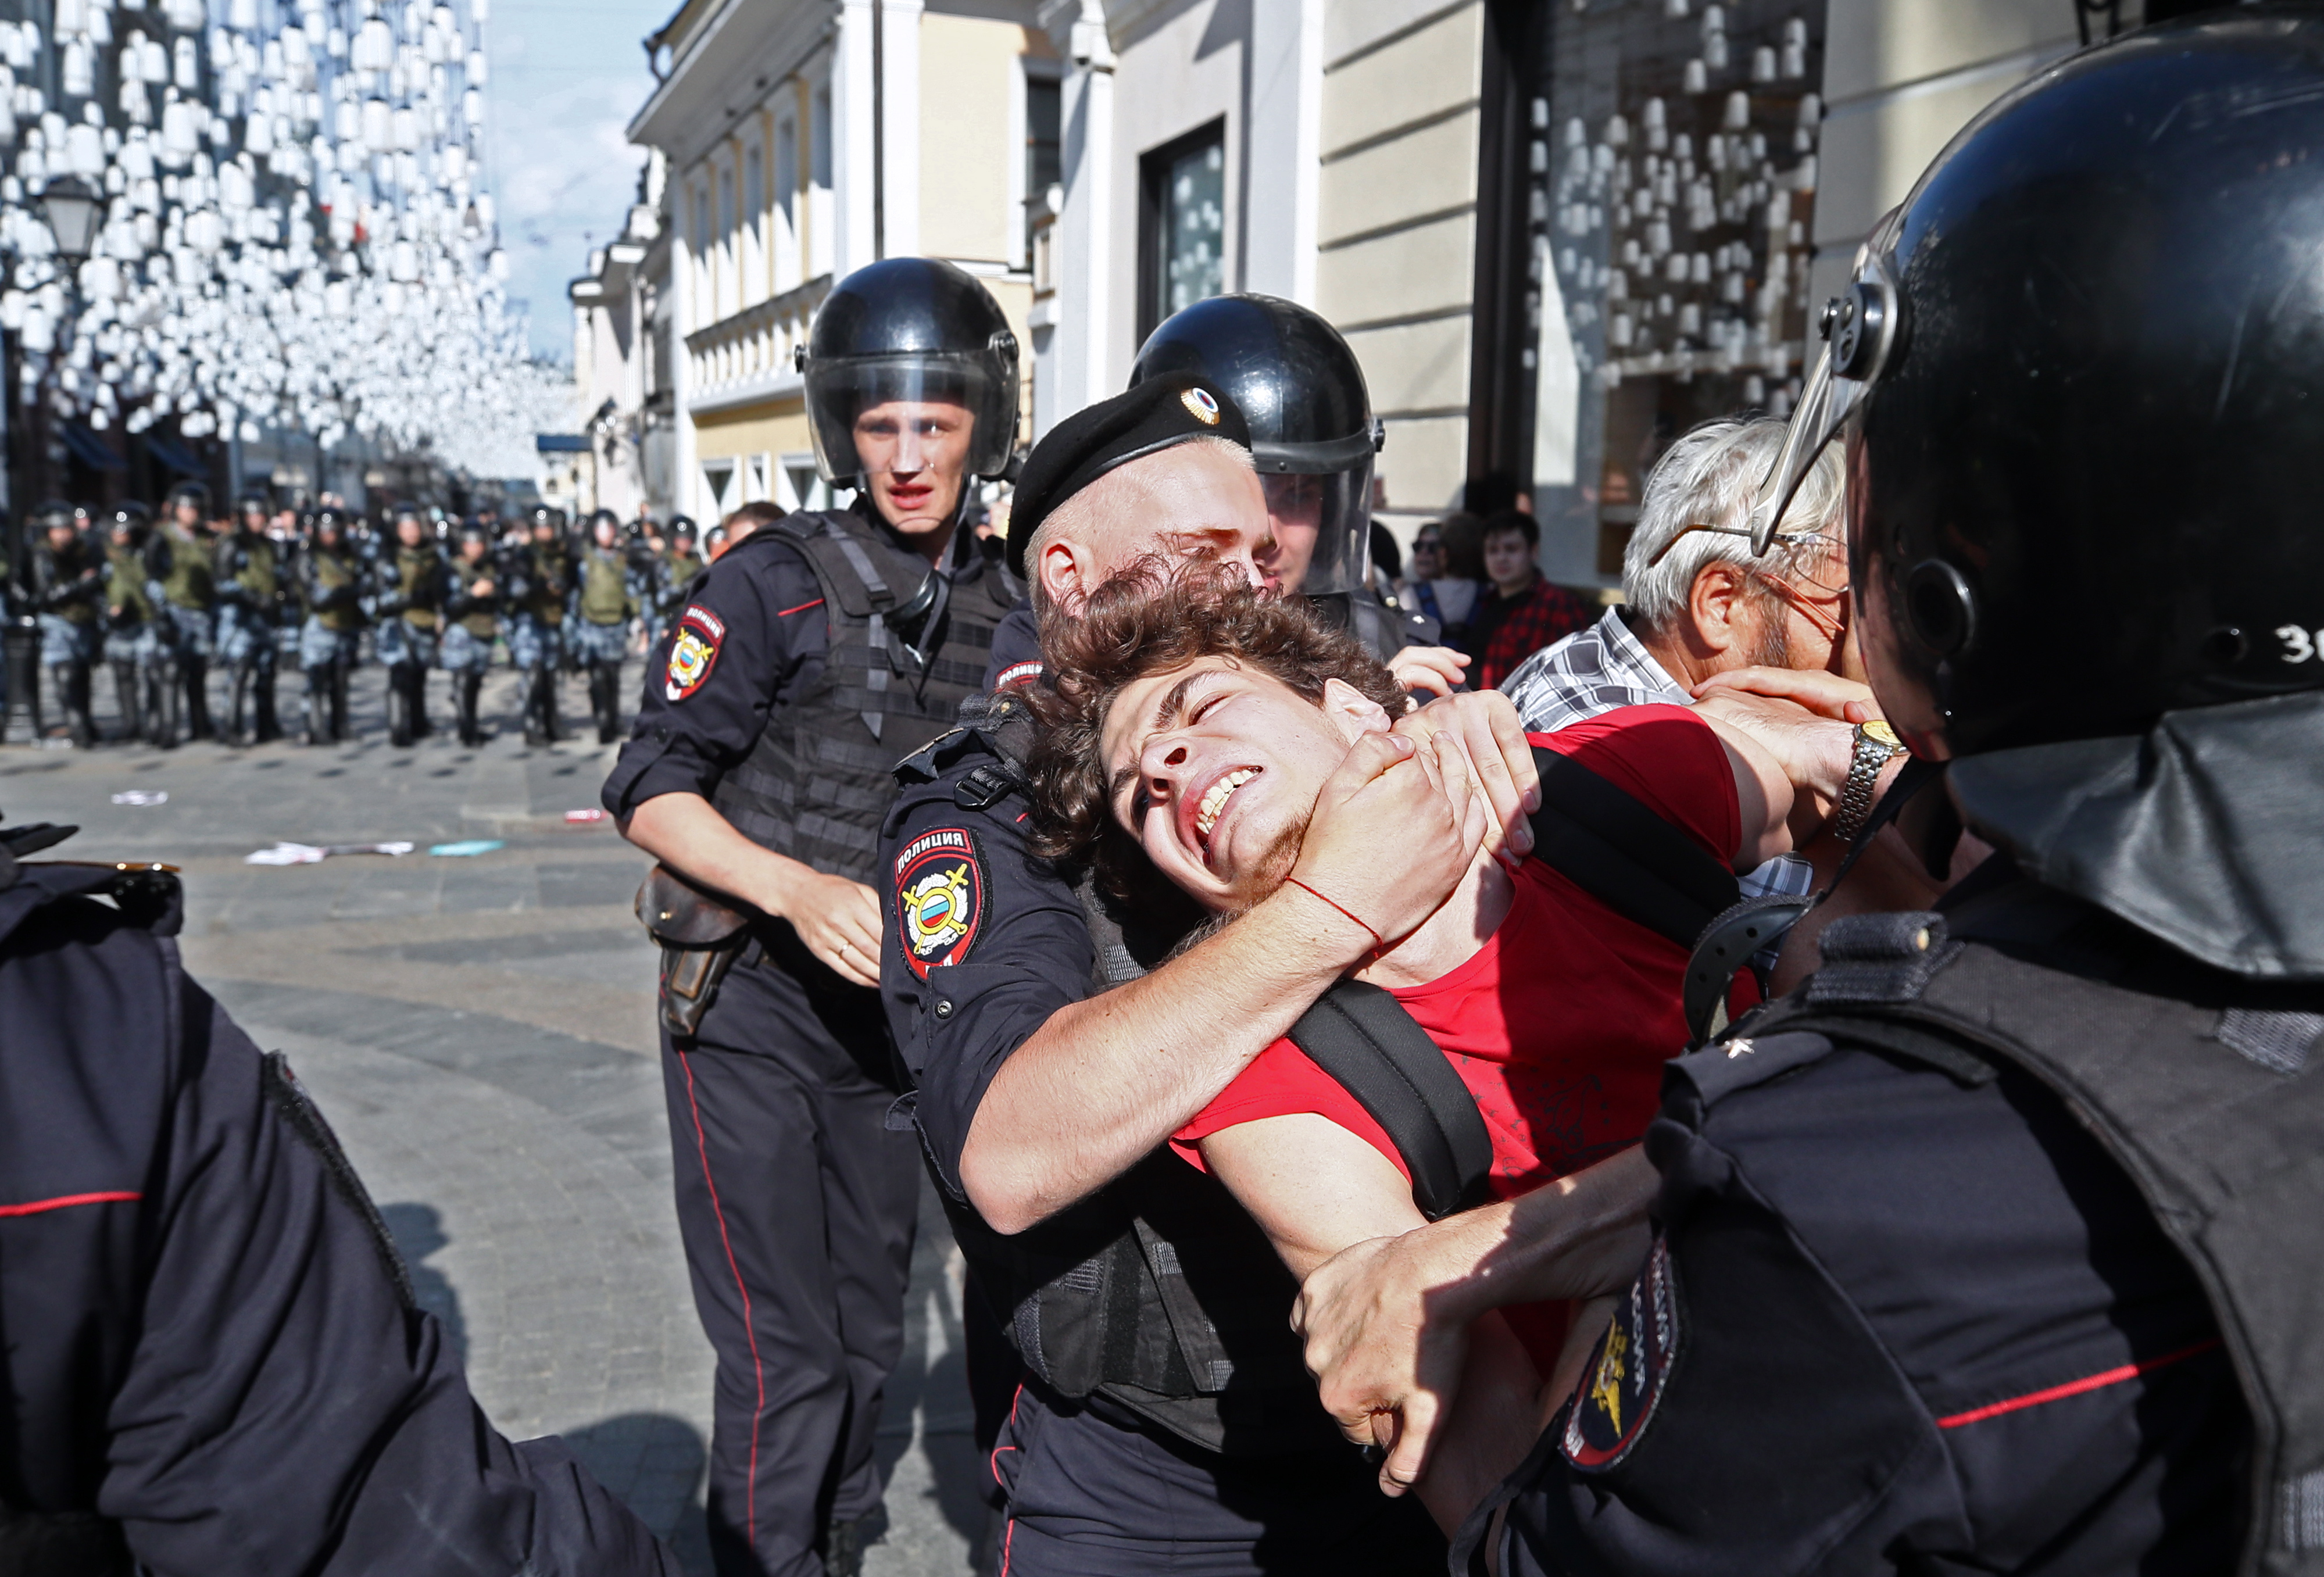 A Russian man struggles as he is arrested by two police officers, one of whom has him in a chokehold.